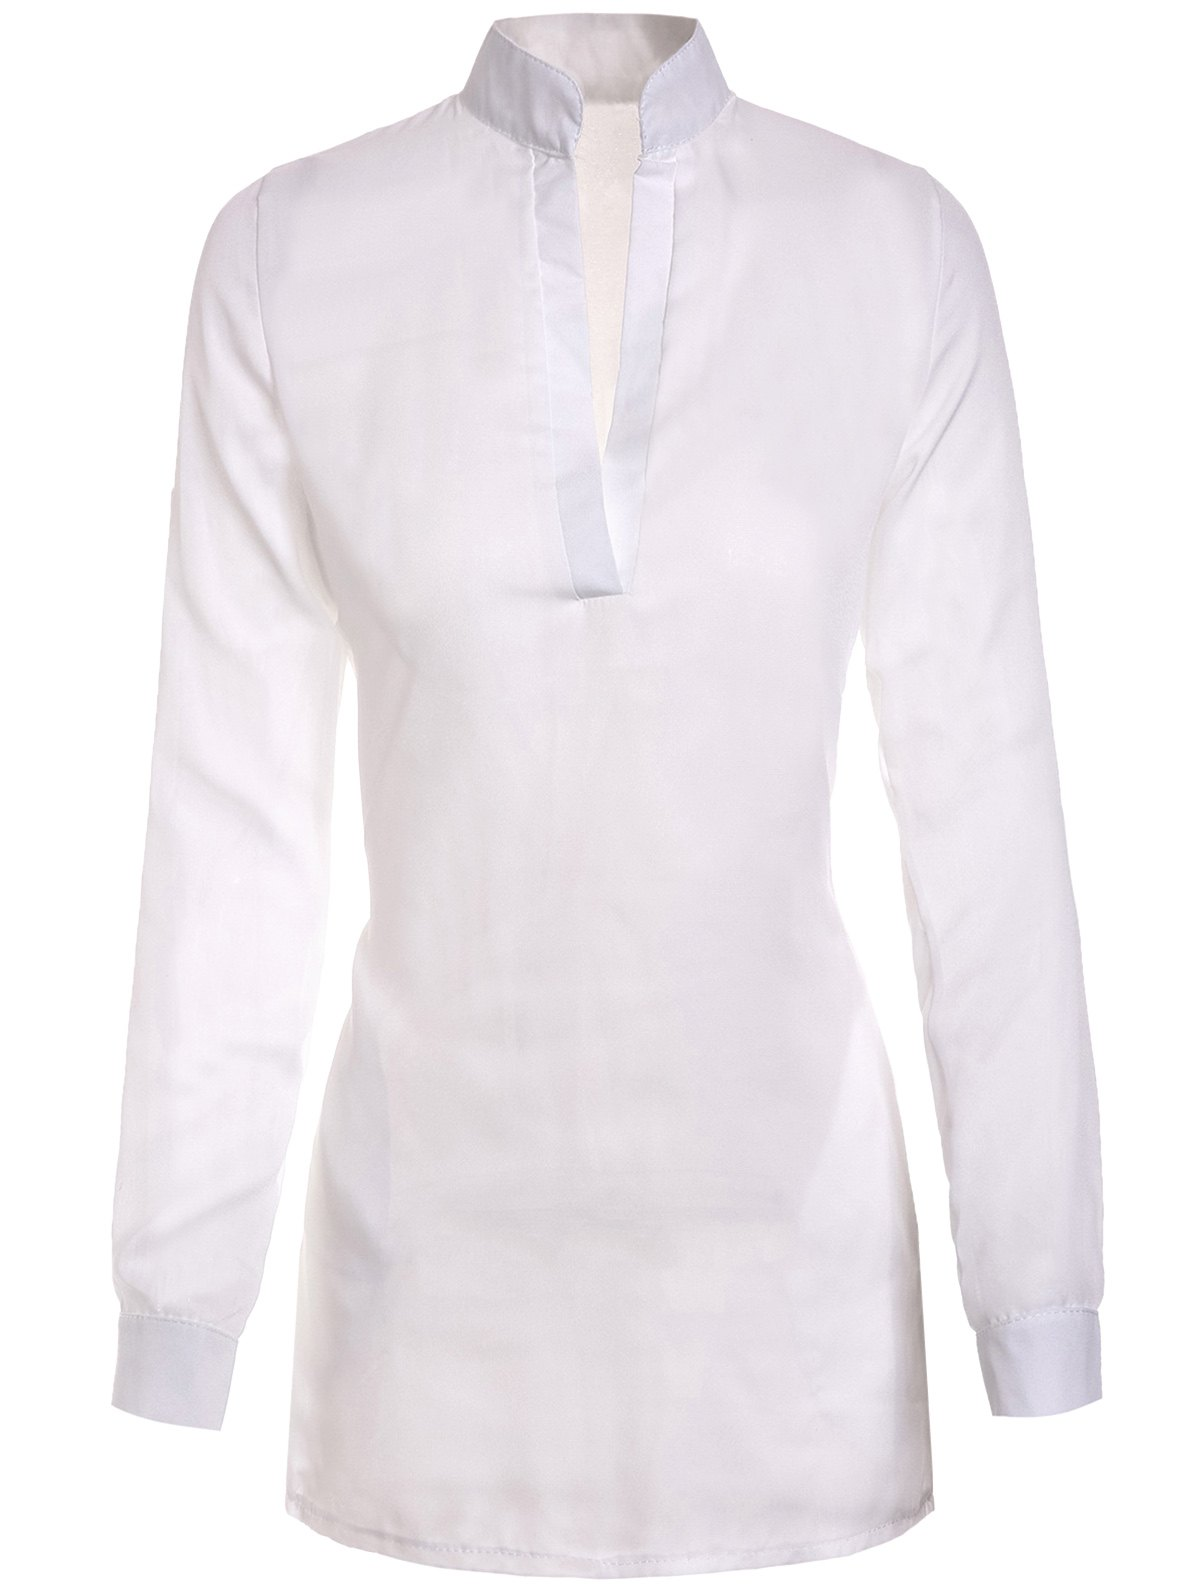 Stylish Plunging Collar Long Sleeve Solid Color Women's Blouse - WHITE XL